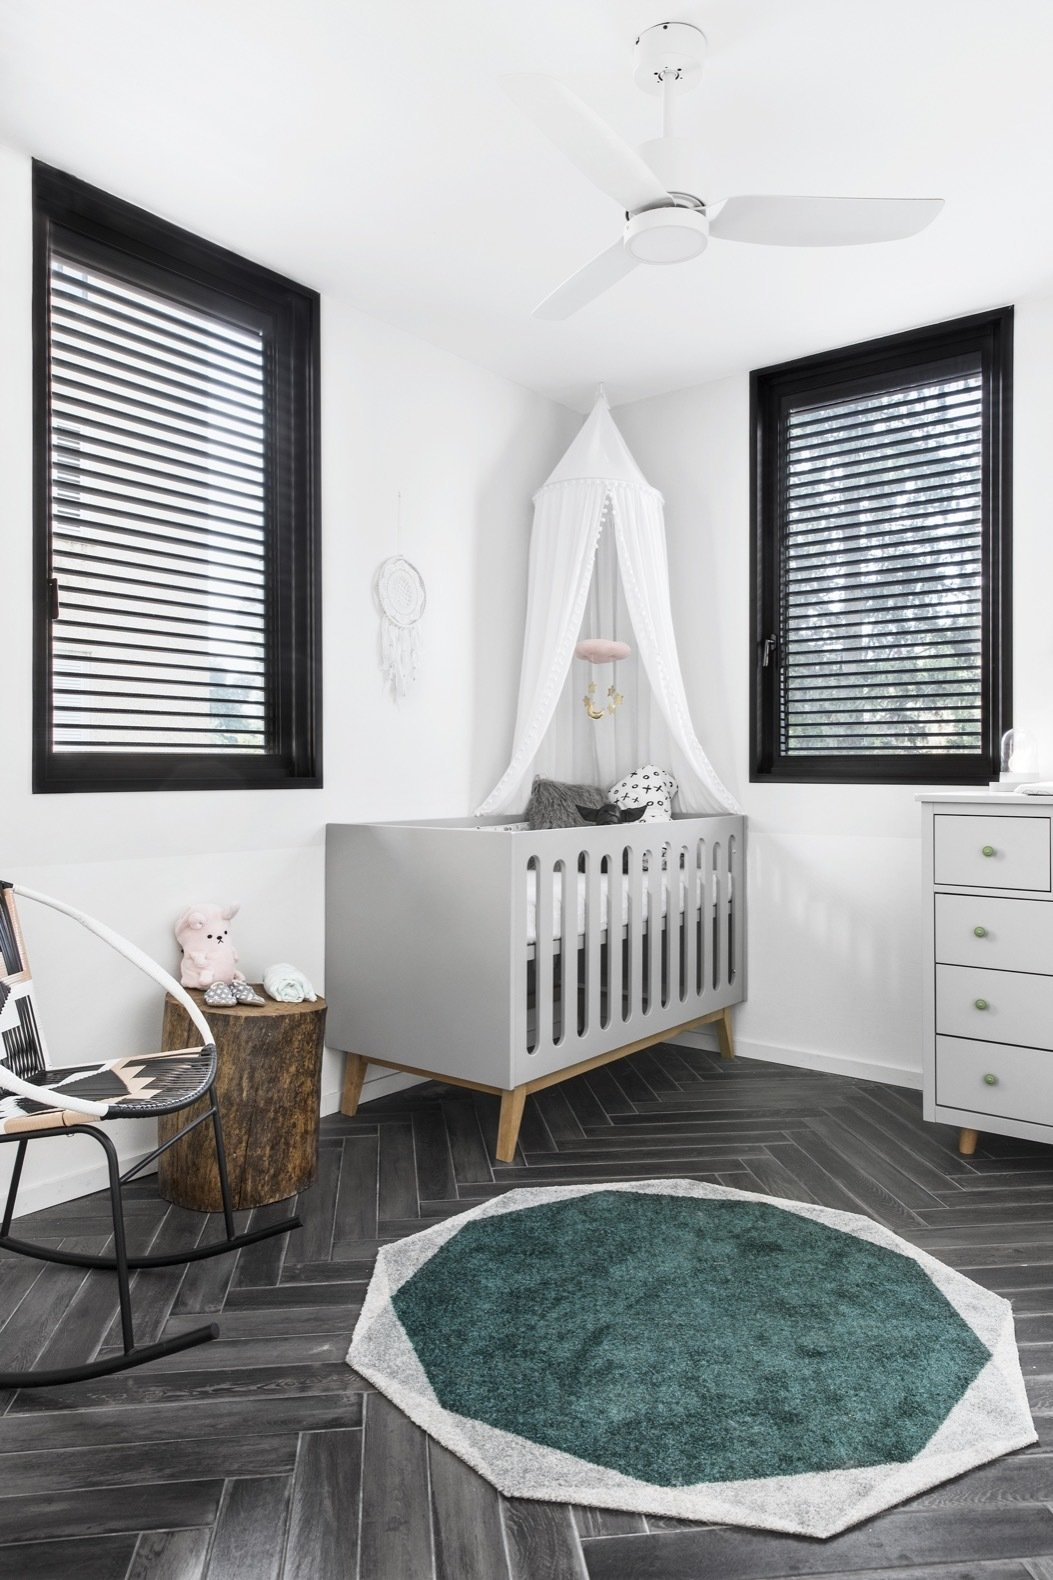 Bedroom, Ceiling Lighting, Rockers, Bed, Porcelain Tile Floor, Rug Floor, Storage, and Night Stands The second bedroom has been converted into a nursery.   Photo 16 of 21 in Budget Breakdown: A Stunning Apartment Revamp Mixes High and Low For Under $100K